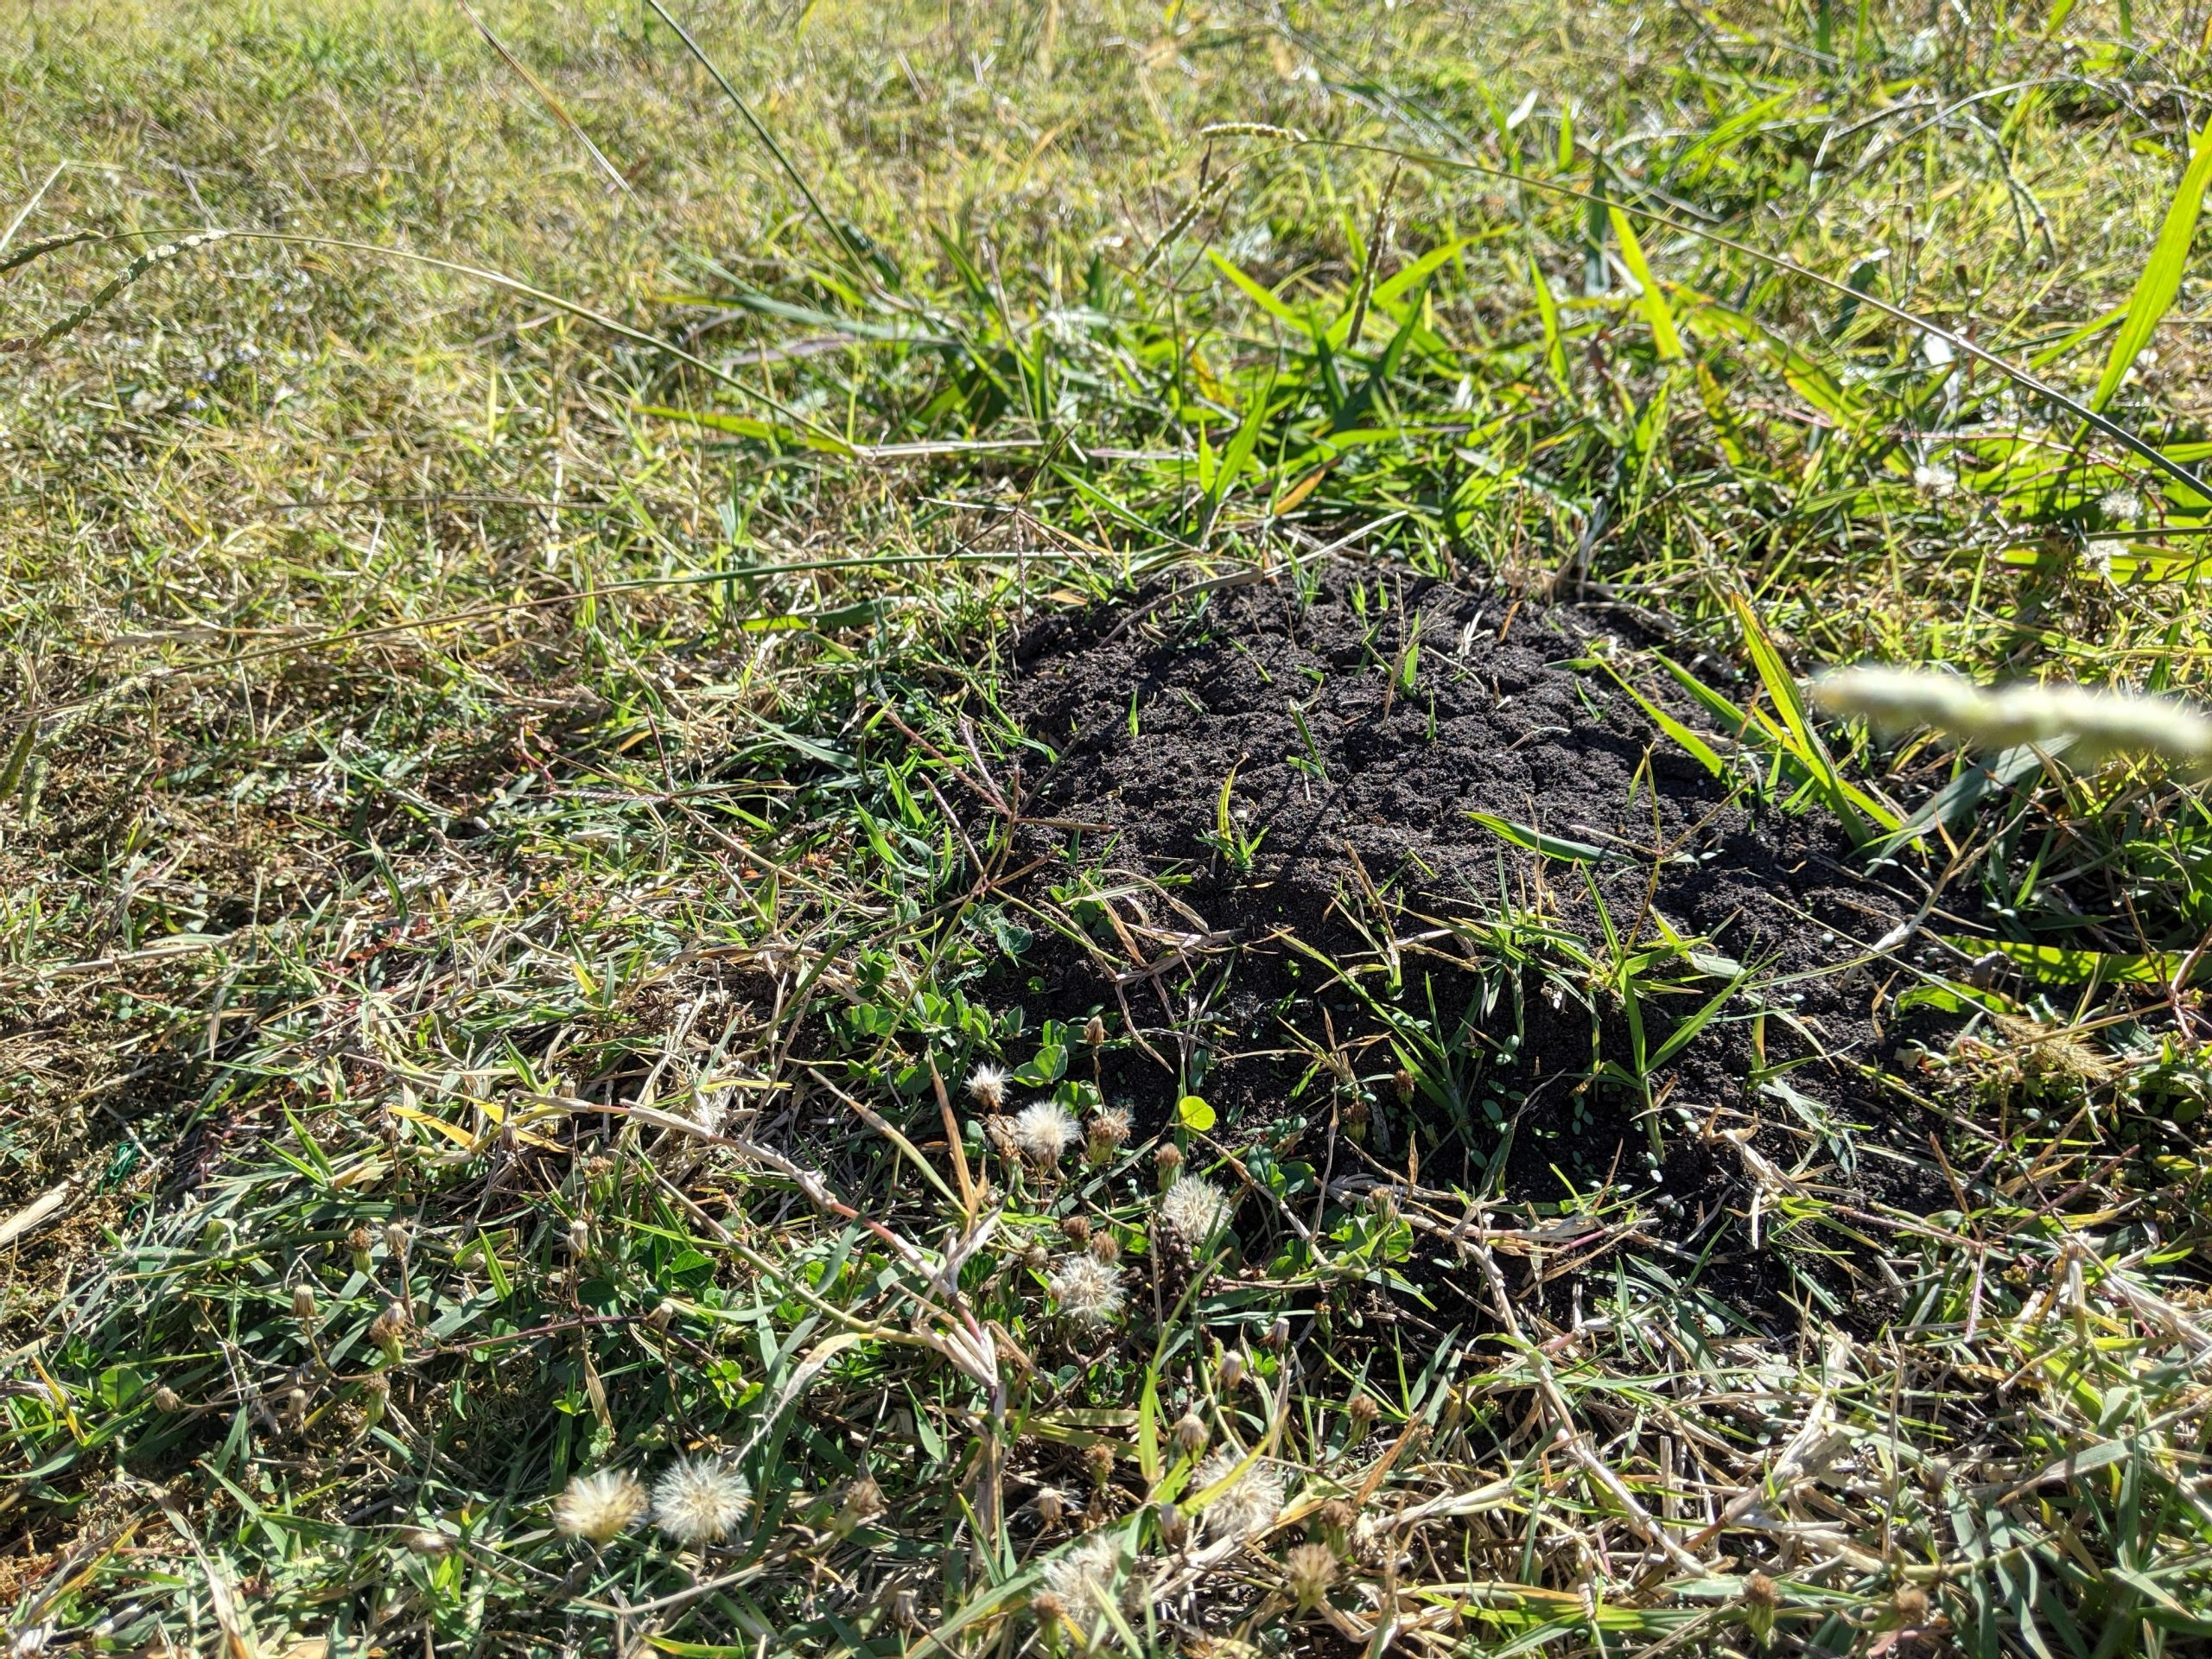 maav7ln843x51 scaled - How to get rid of these anthills in my backyard safely. - home, hobbies